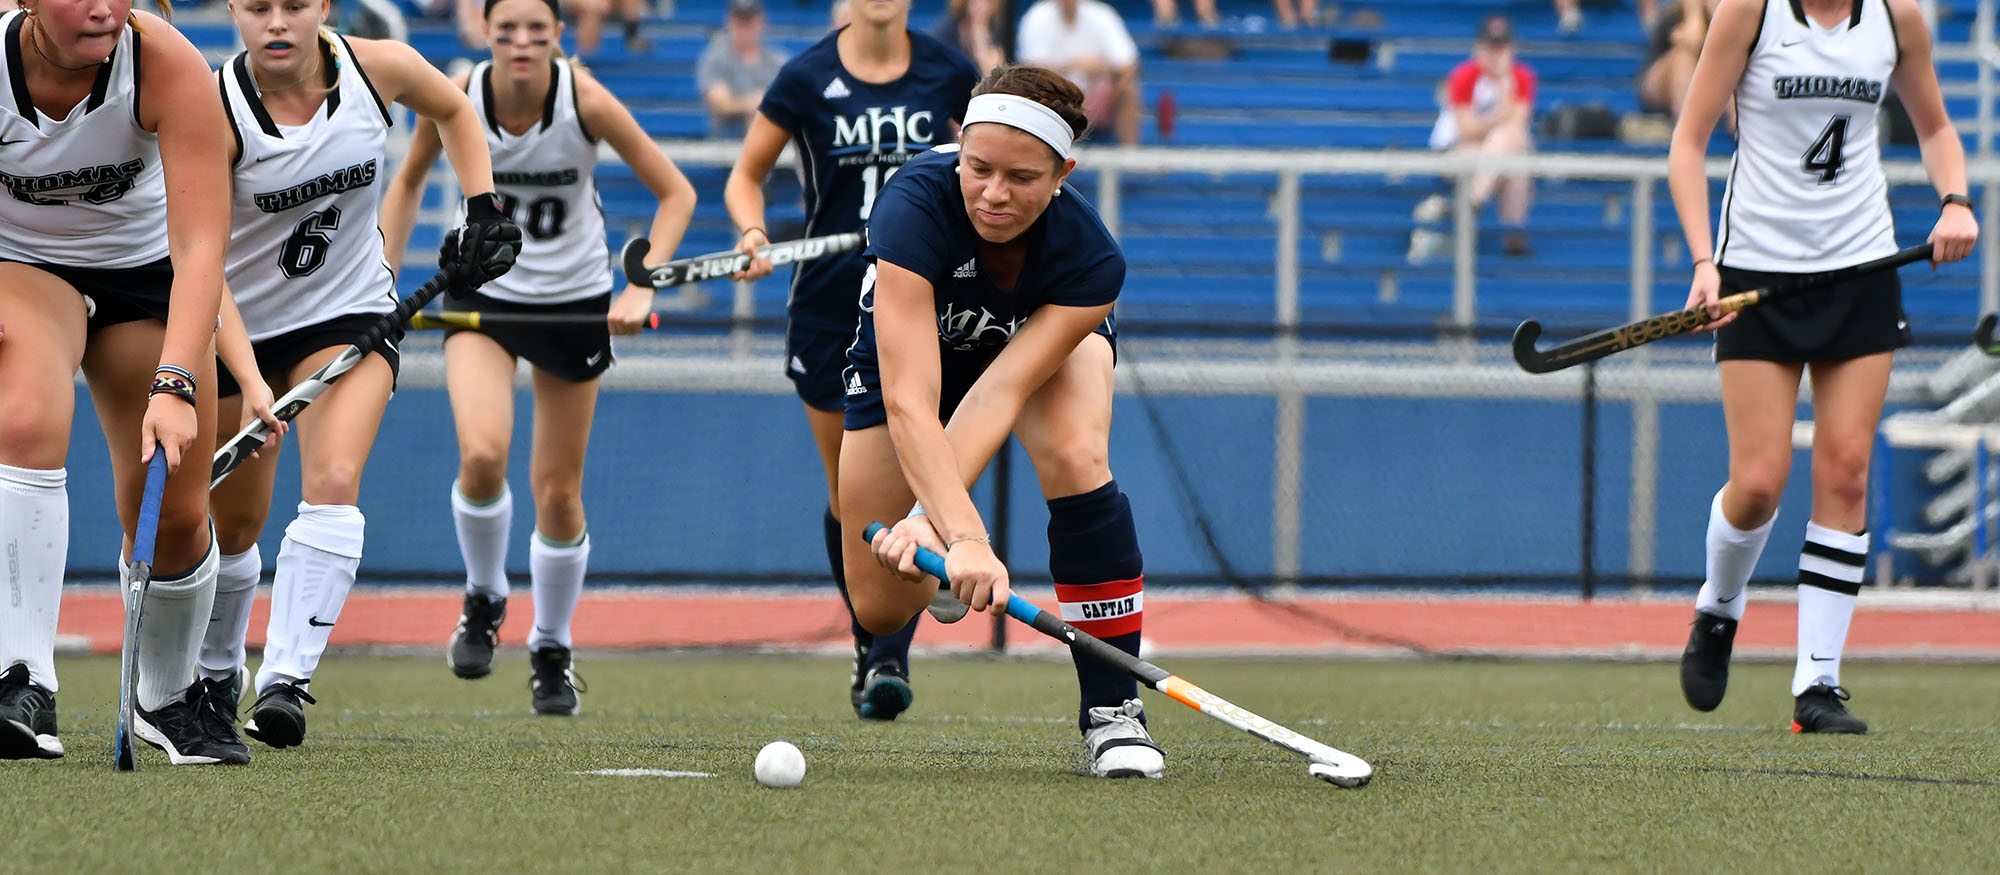 Springfield Edges Field Hockey, 3-2, in NEWMAC Quarterfinals